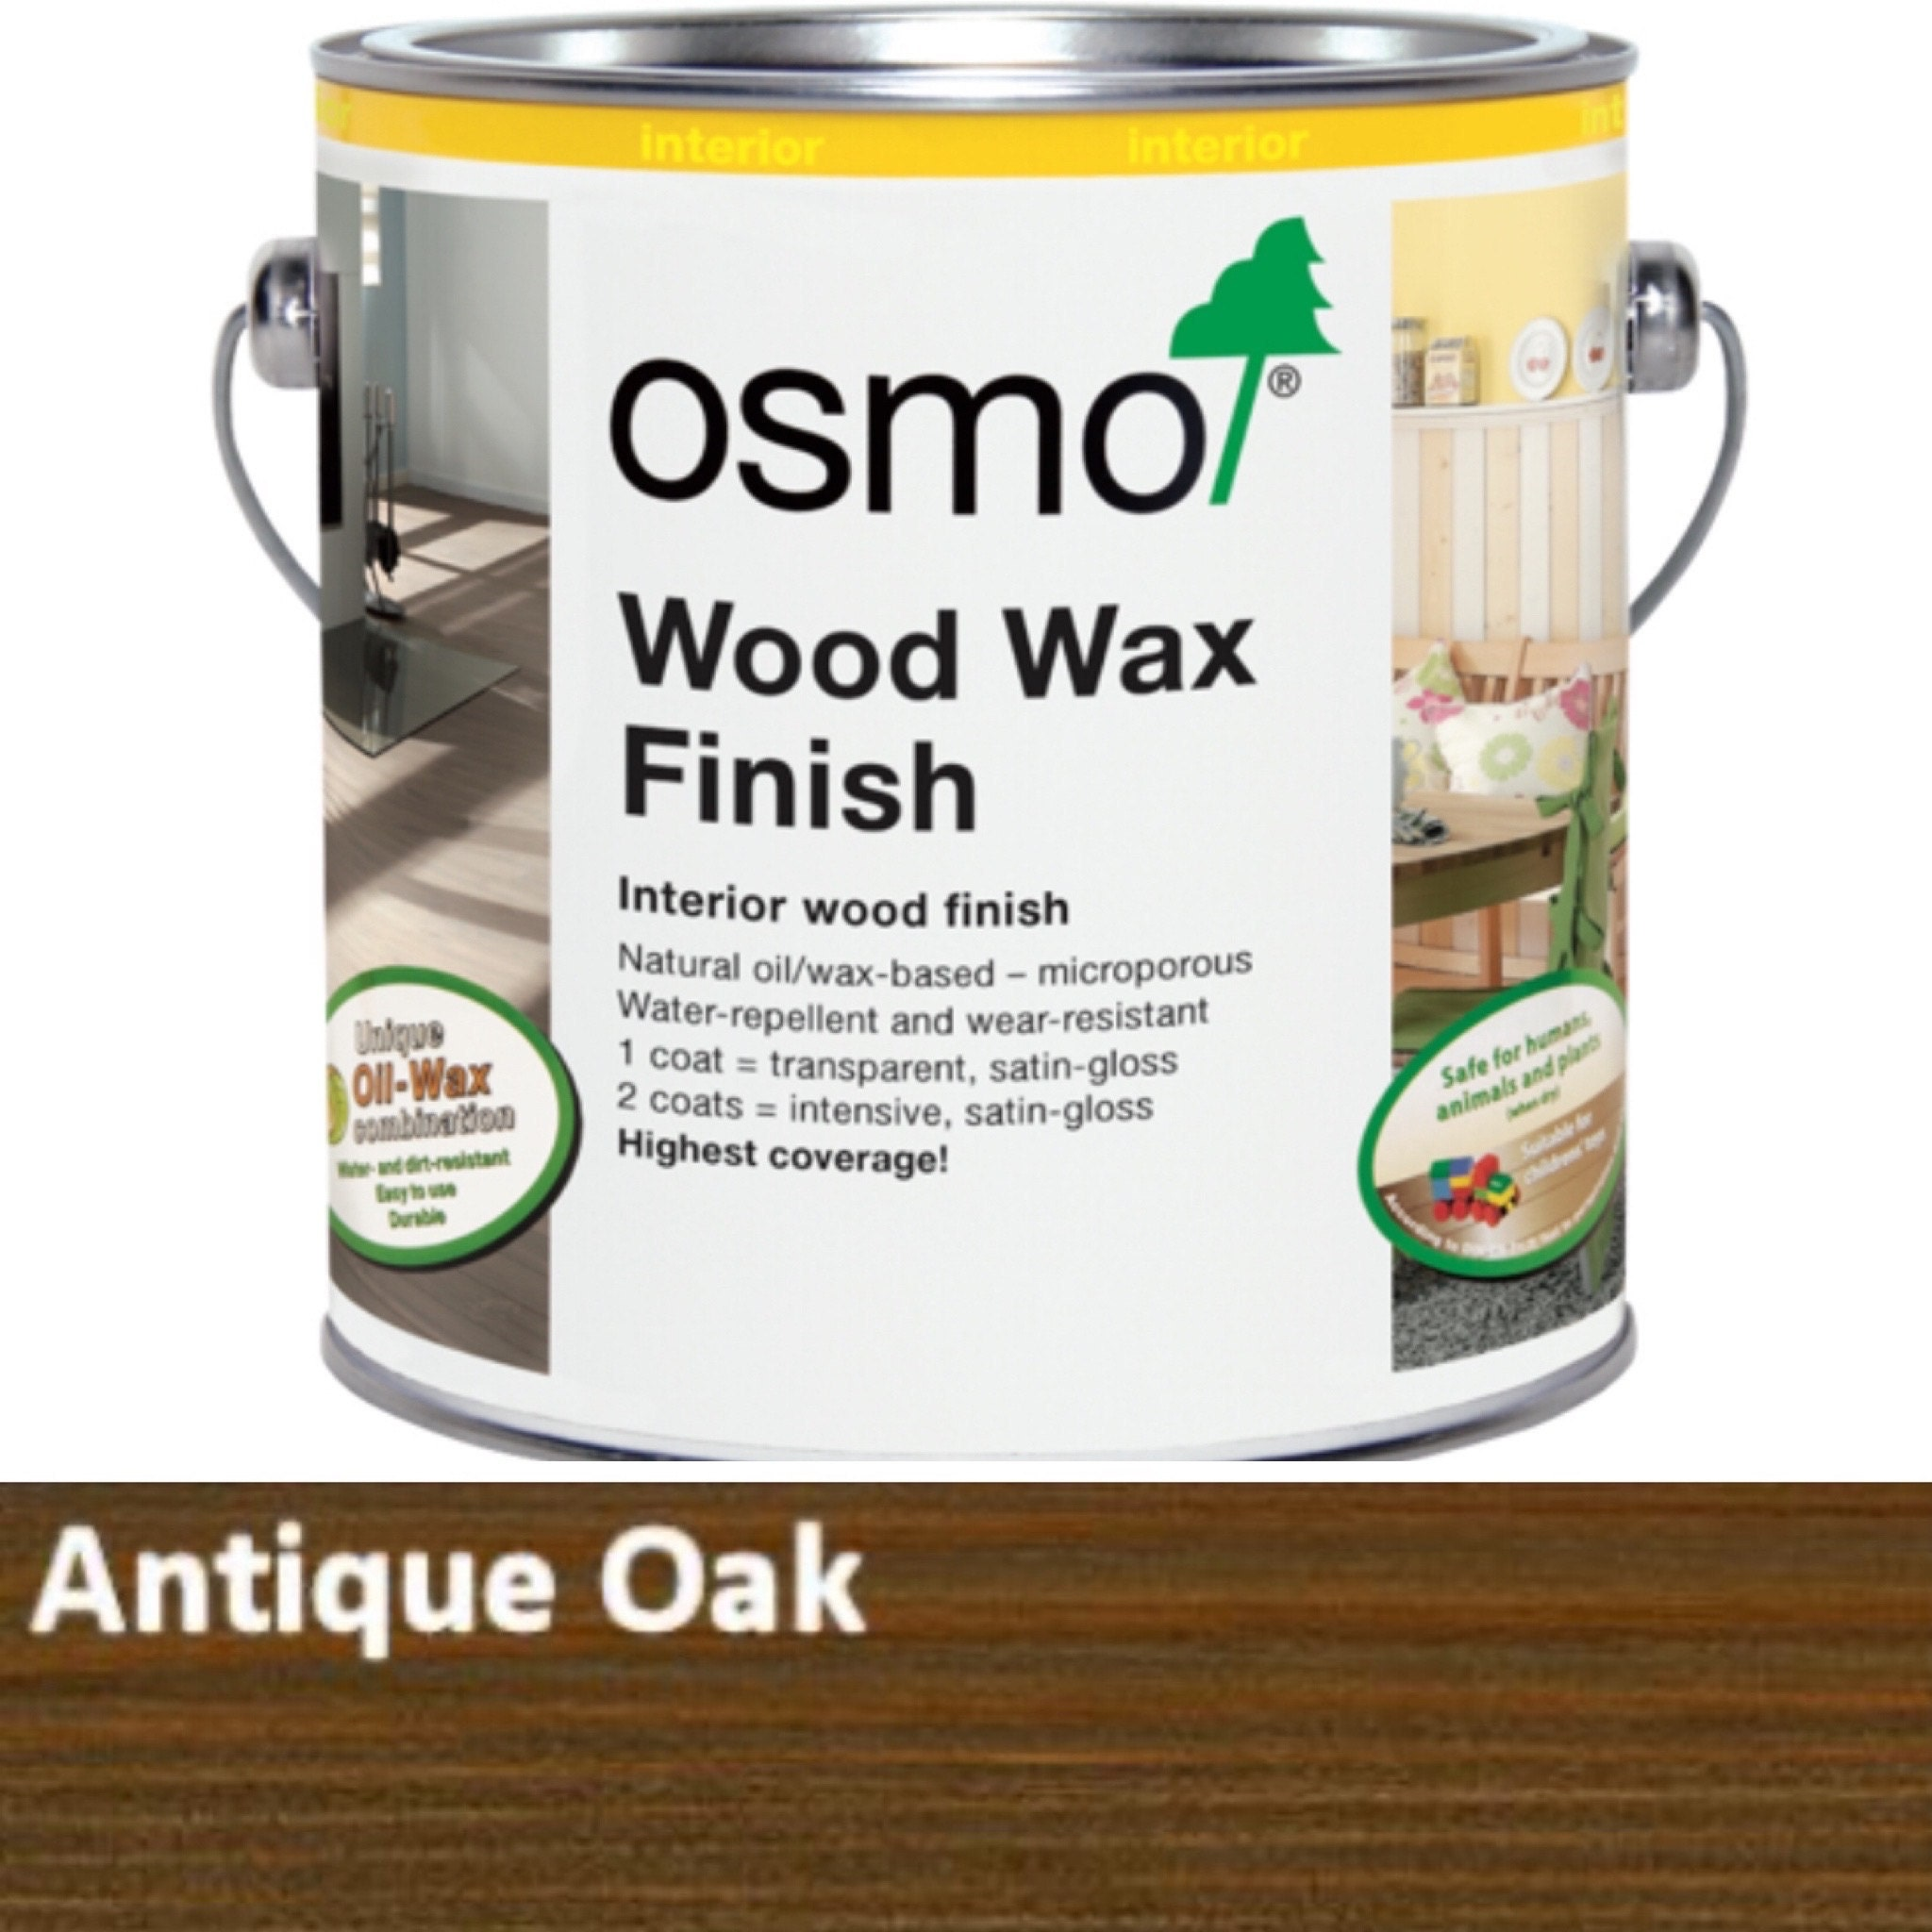 Osmo dark oak wax oil Gorlech key racks